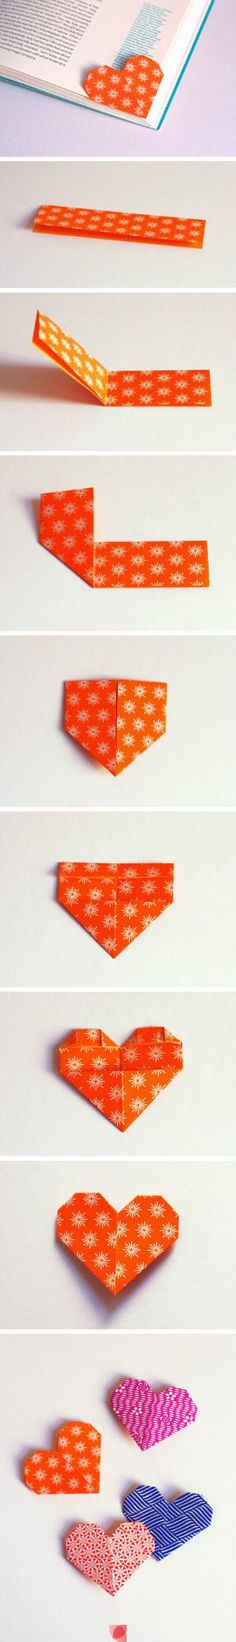 Origami corner heart bookmark